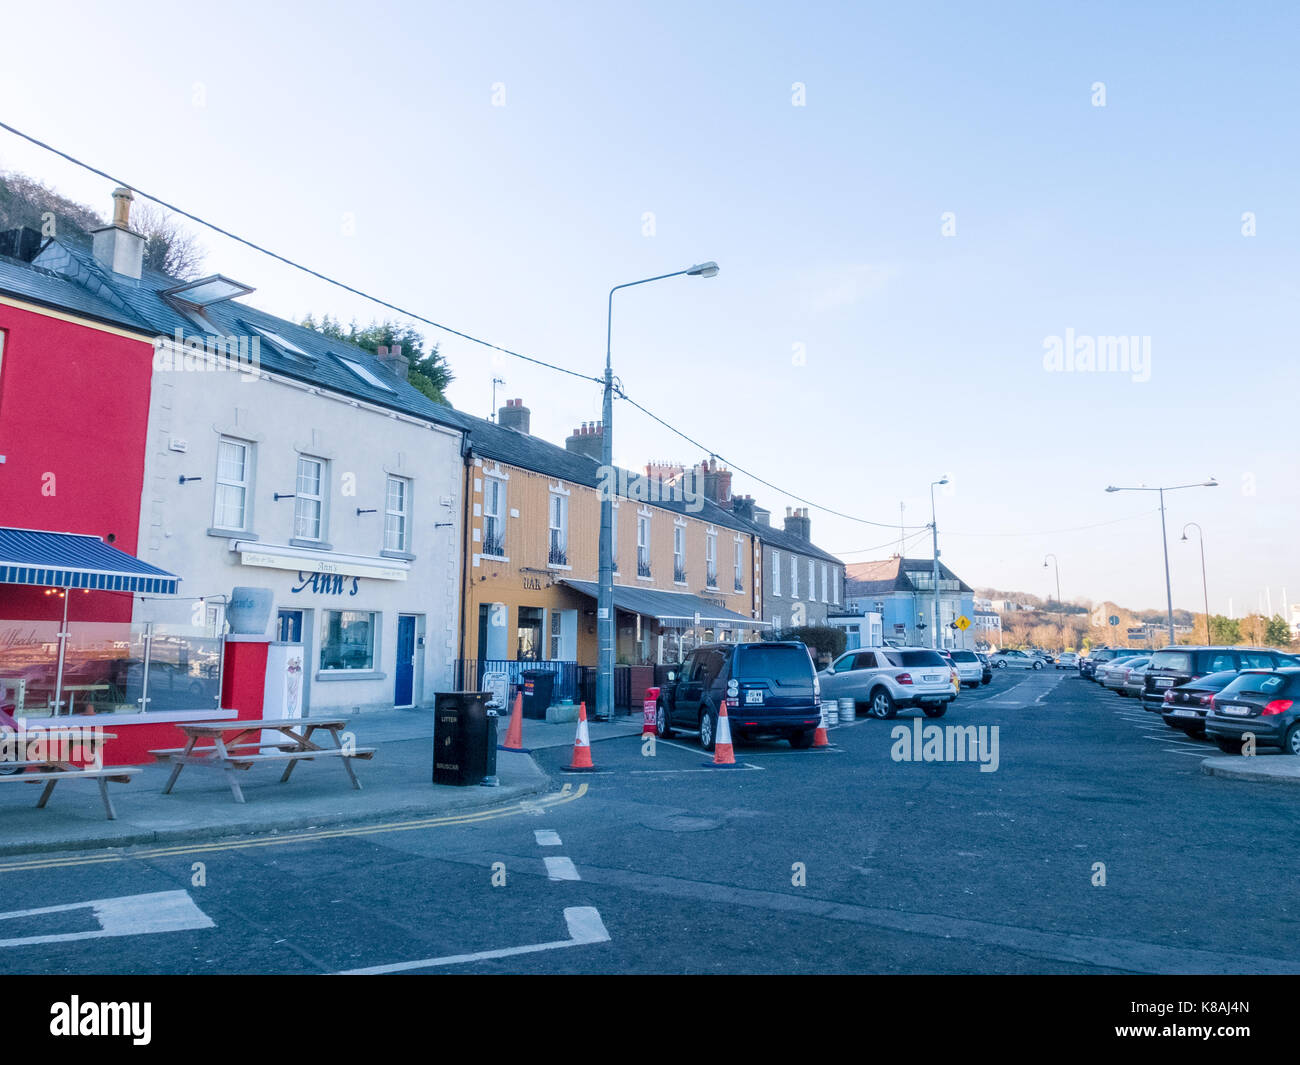 Howth town - Dublin, Ireland - Stock Image